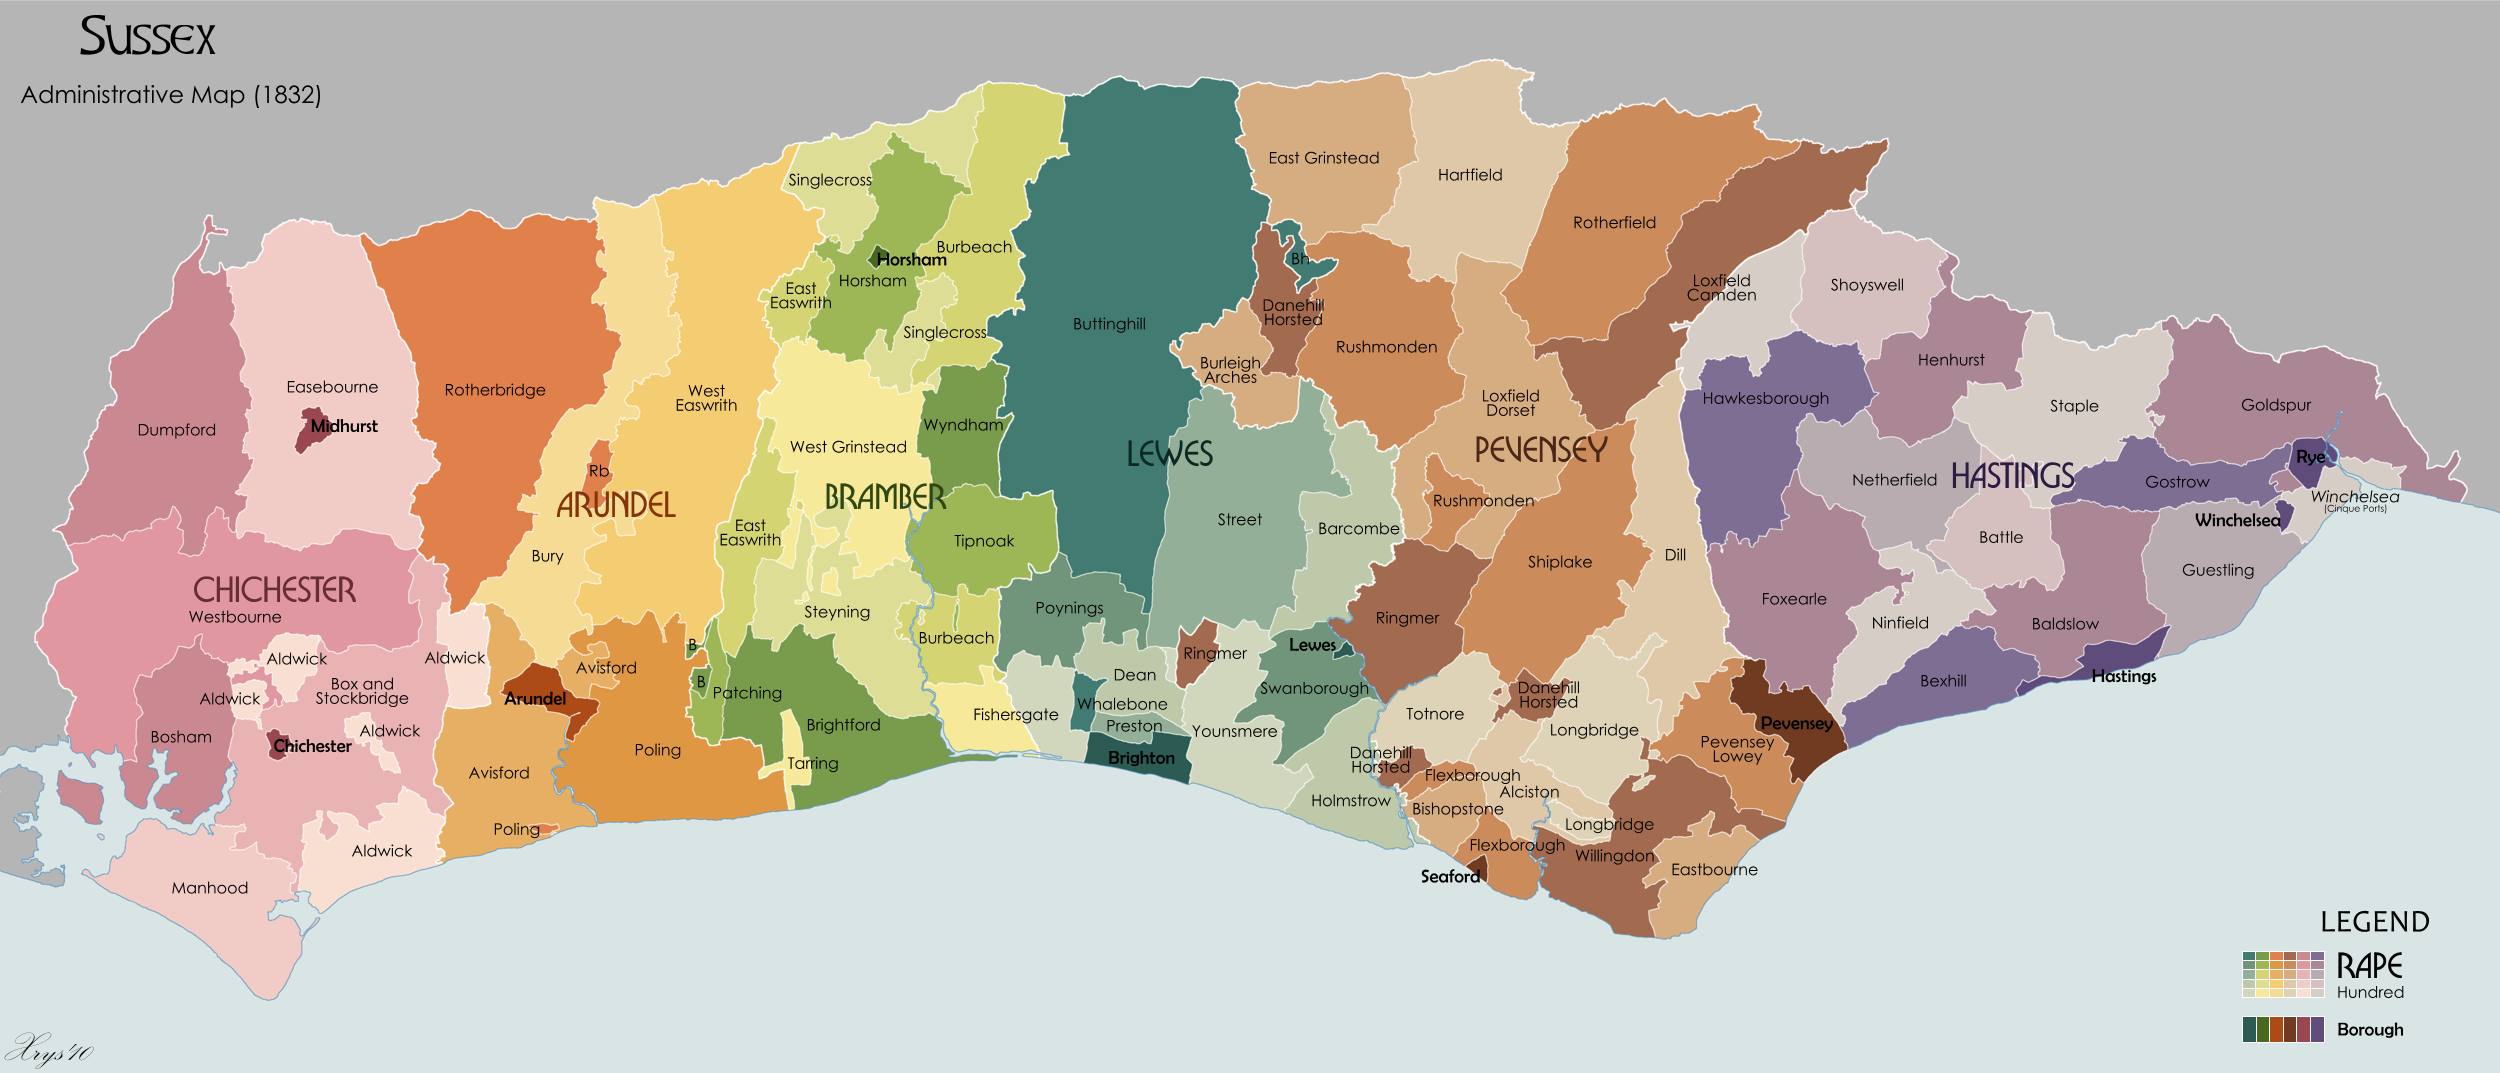 Sussex_administrative_map_1832.png